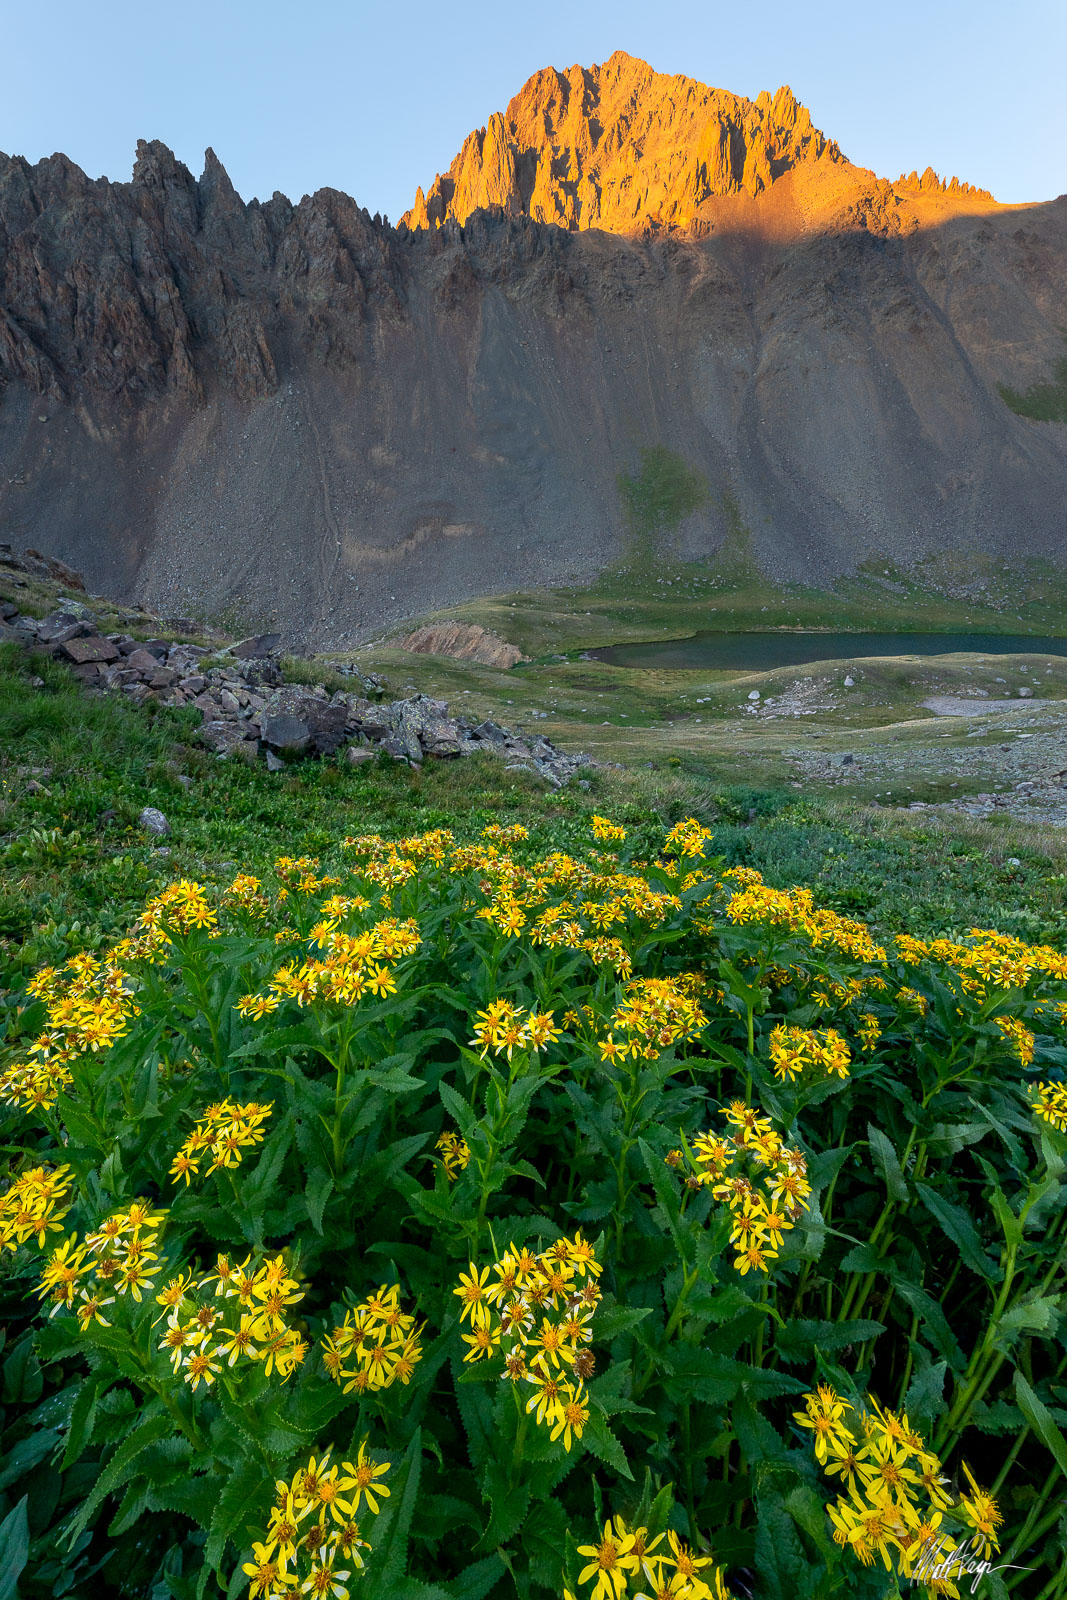 Earlier this summer I decided to backpack up to some high mountain lakes here in the San Juan Mountains of Colorado and was delighted...